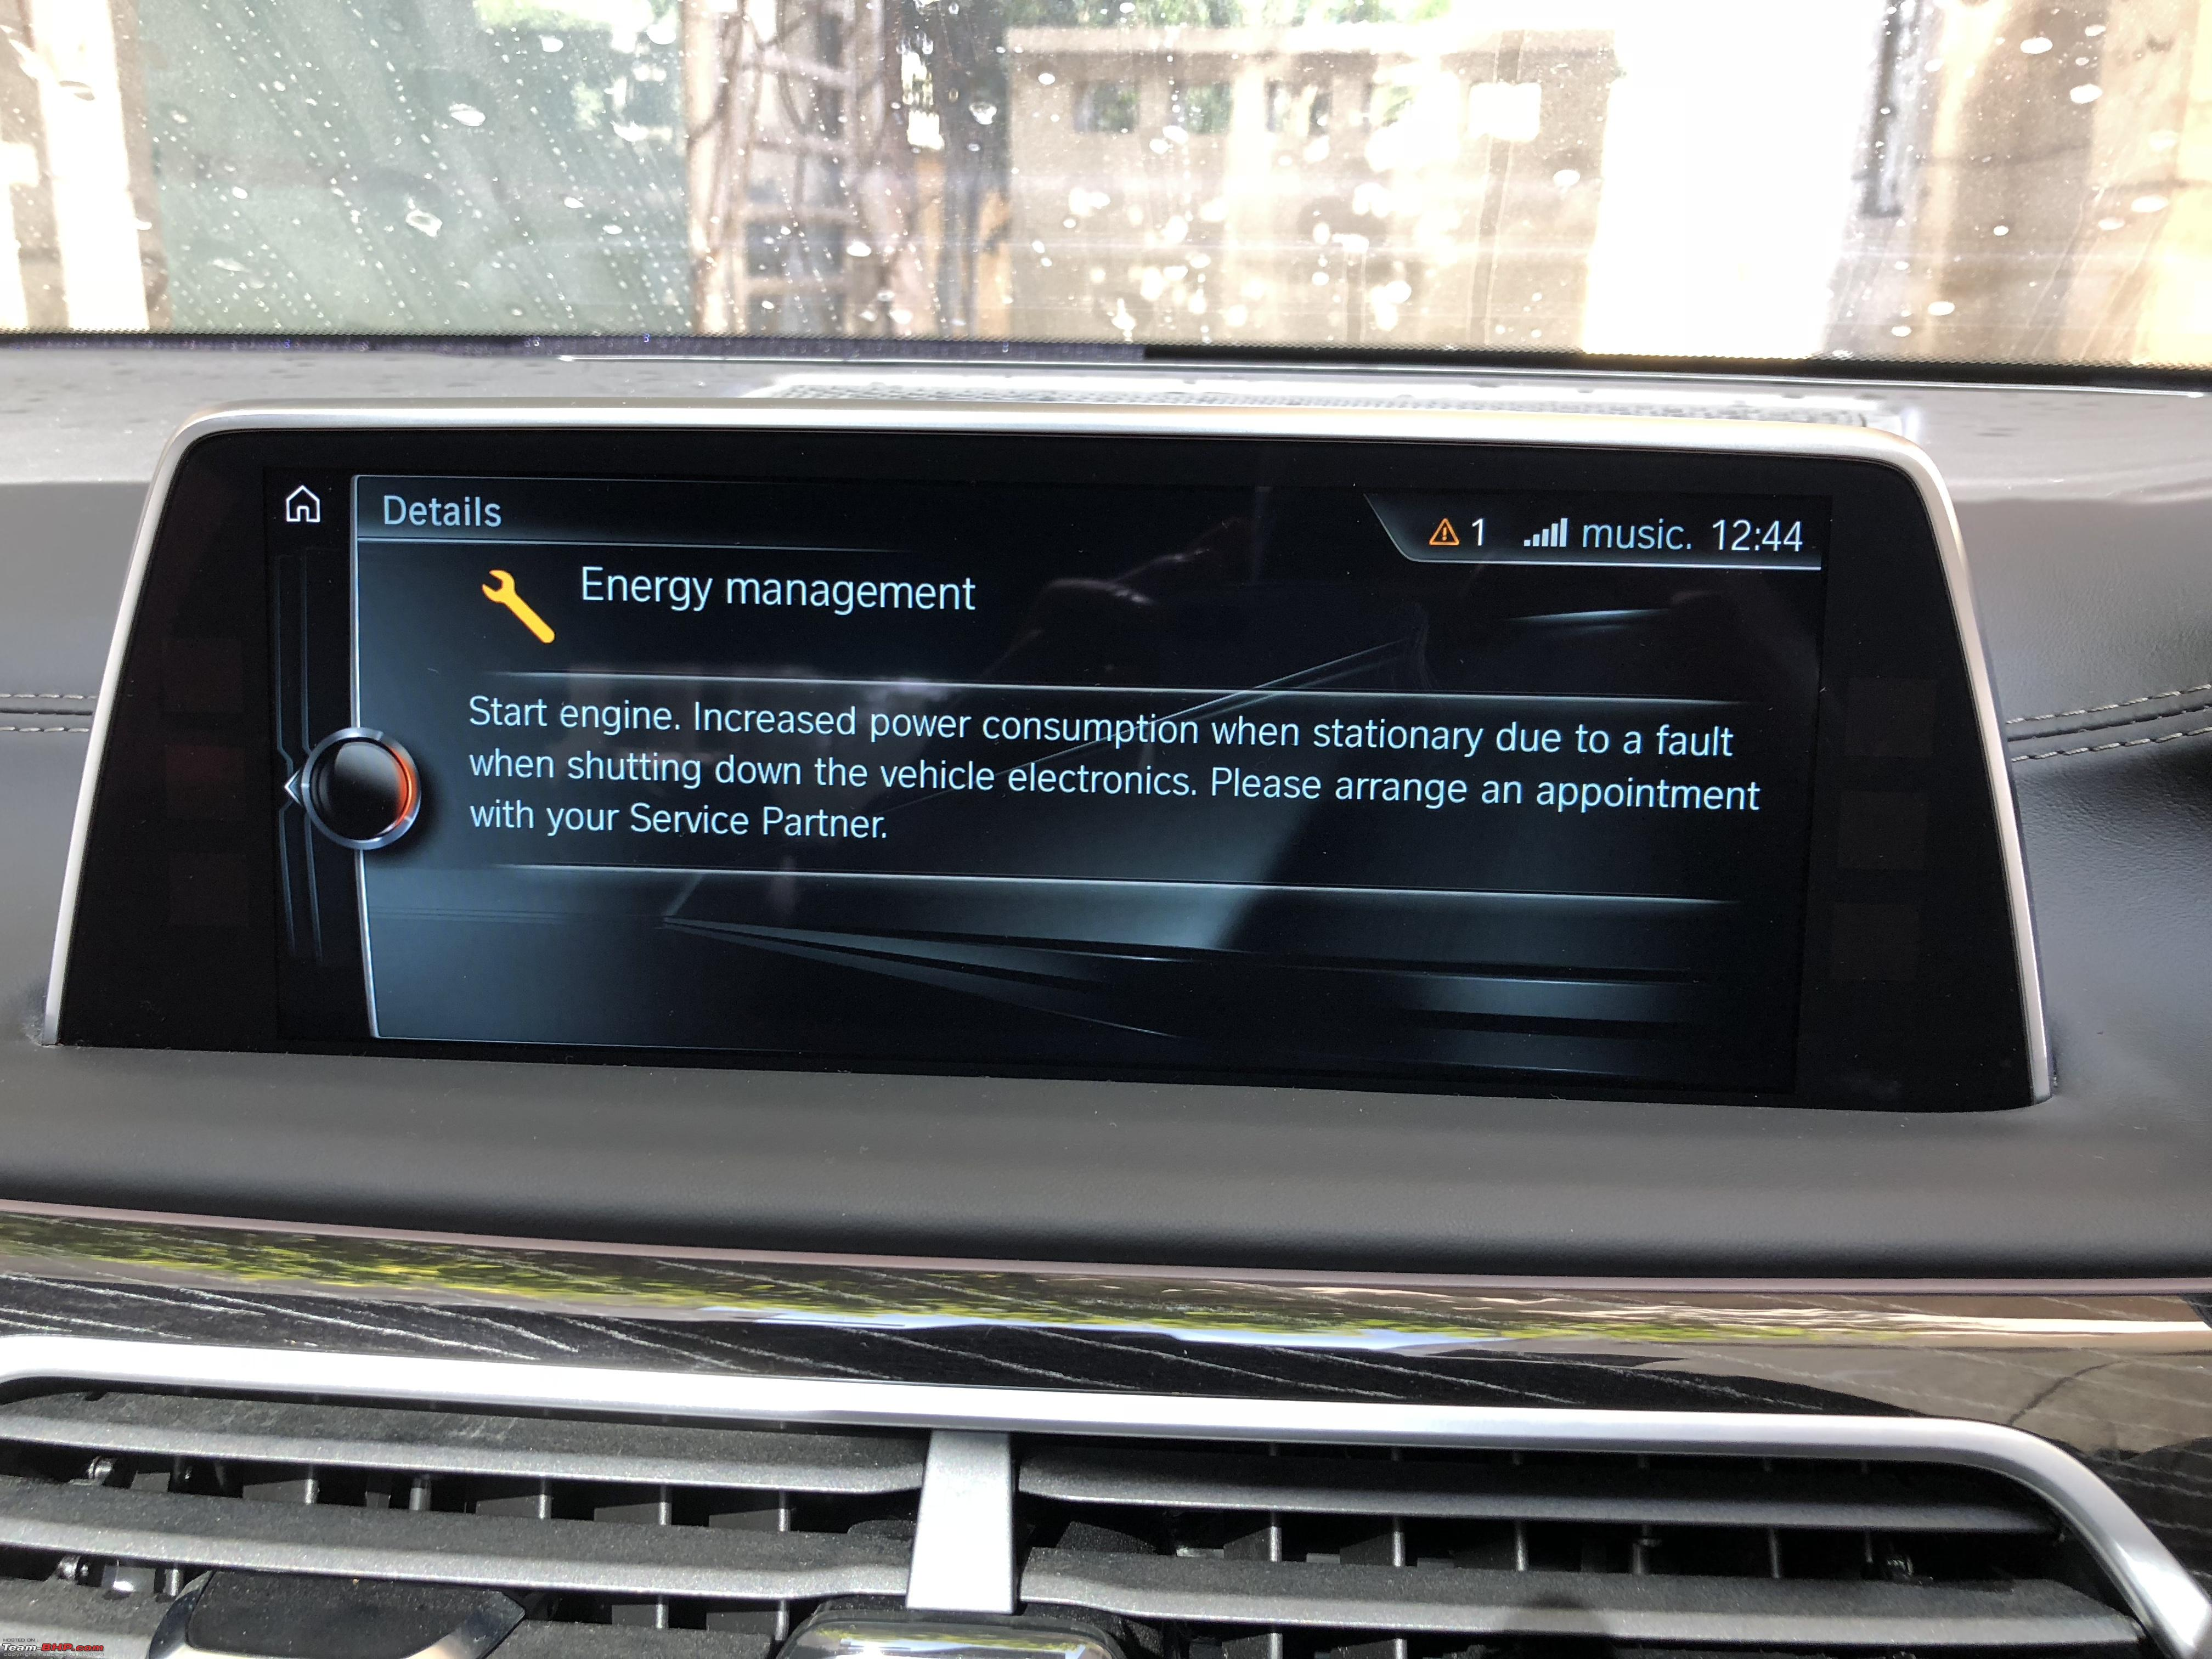 BMW India won't fulfil warranty on dead battery of a 4-month